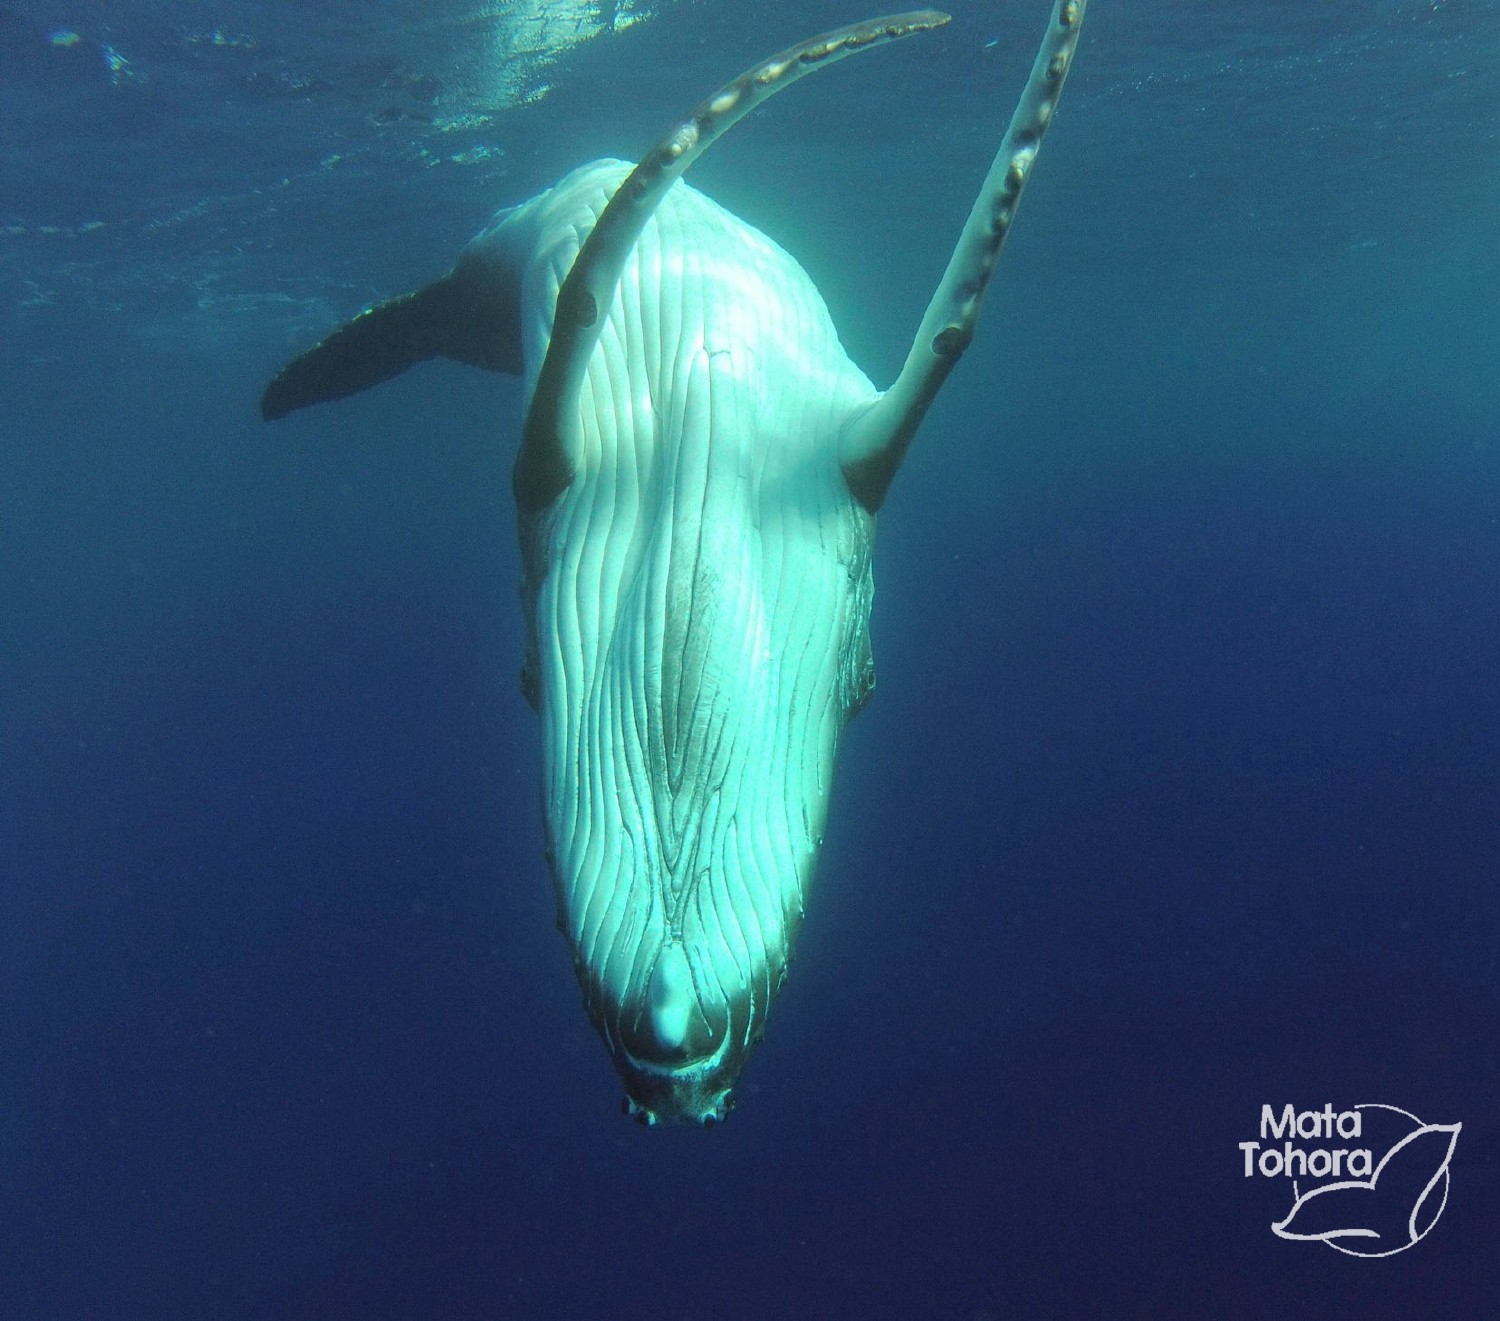 Mata Tohora protects humpback whales in French Polynesia